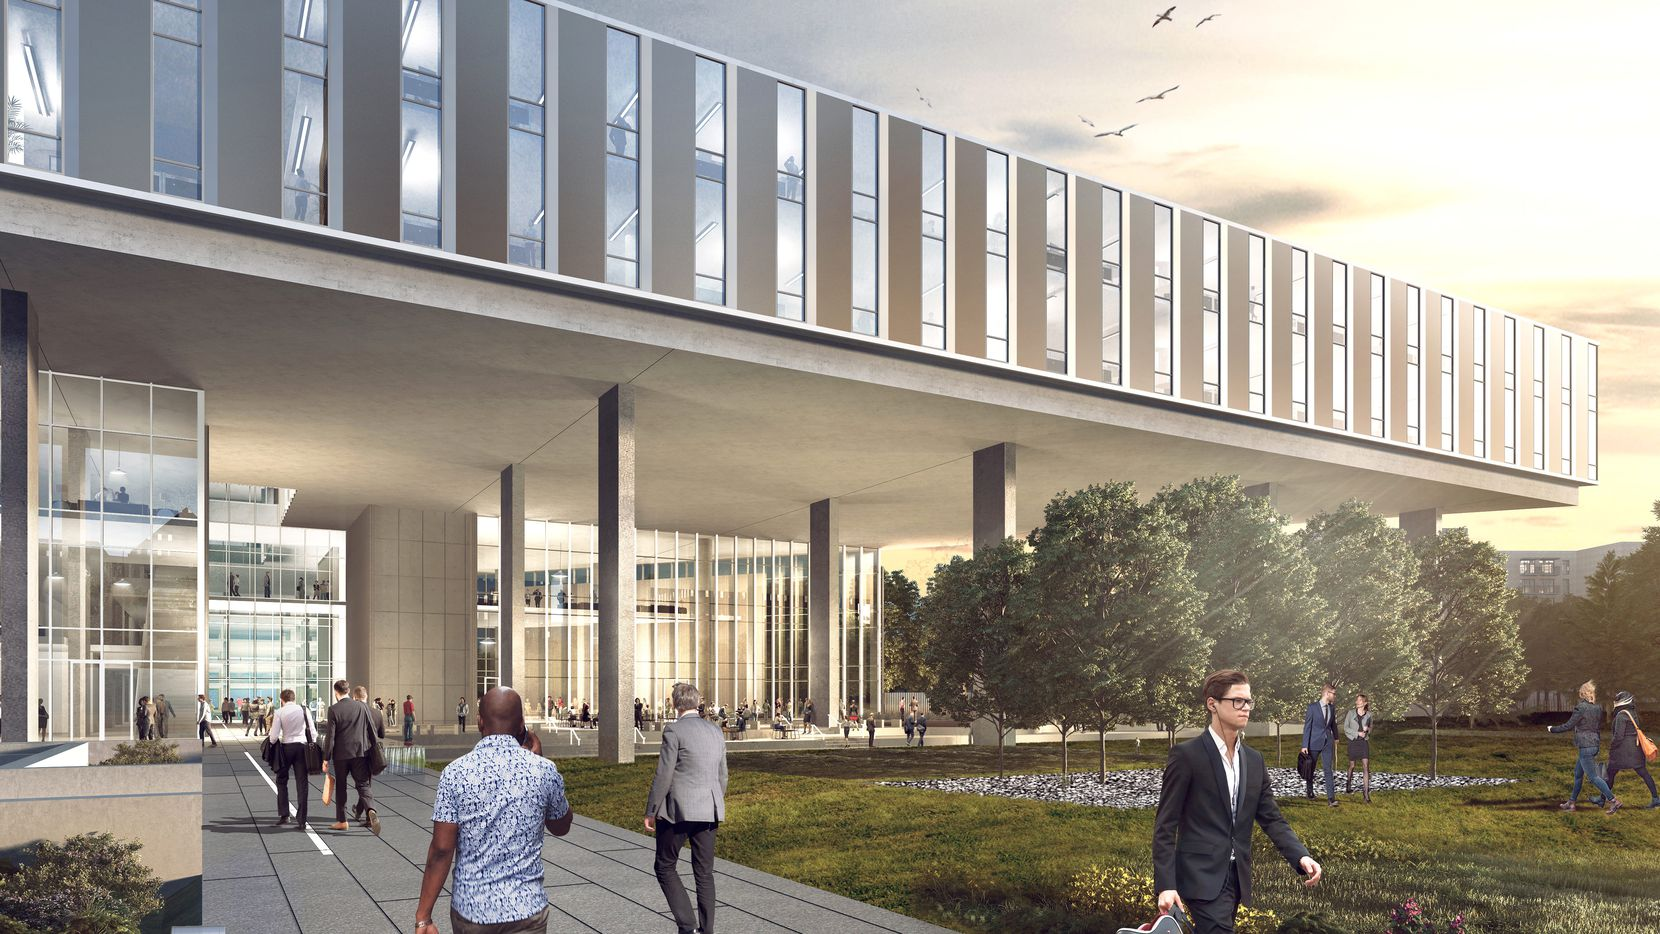 Baylor Scott & White's new East Dallas office campus will house hundreds of workers.